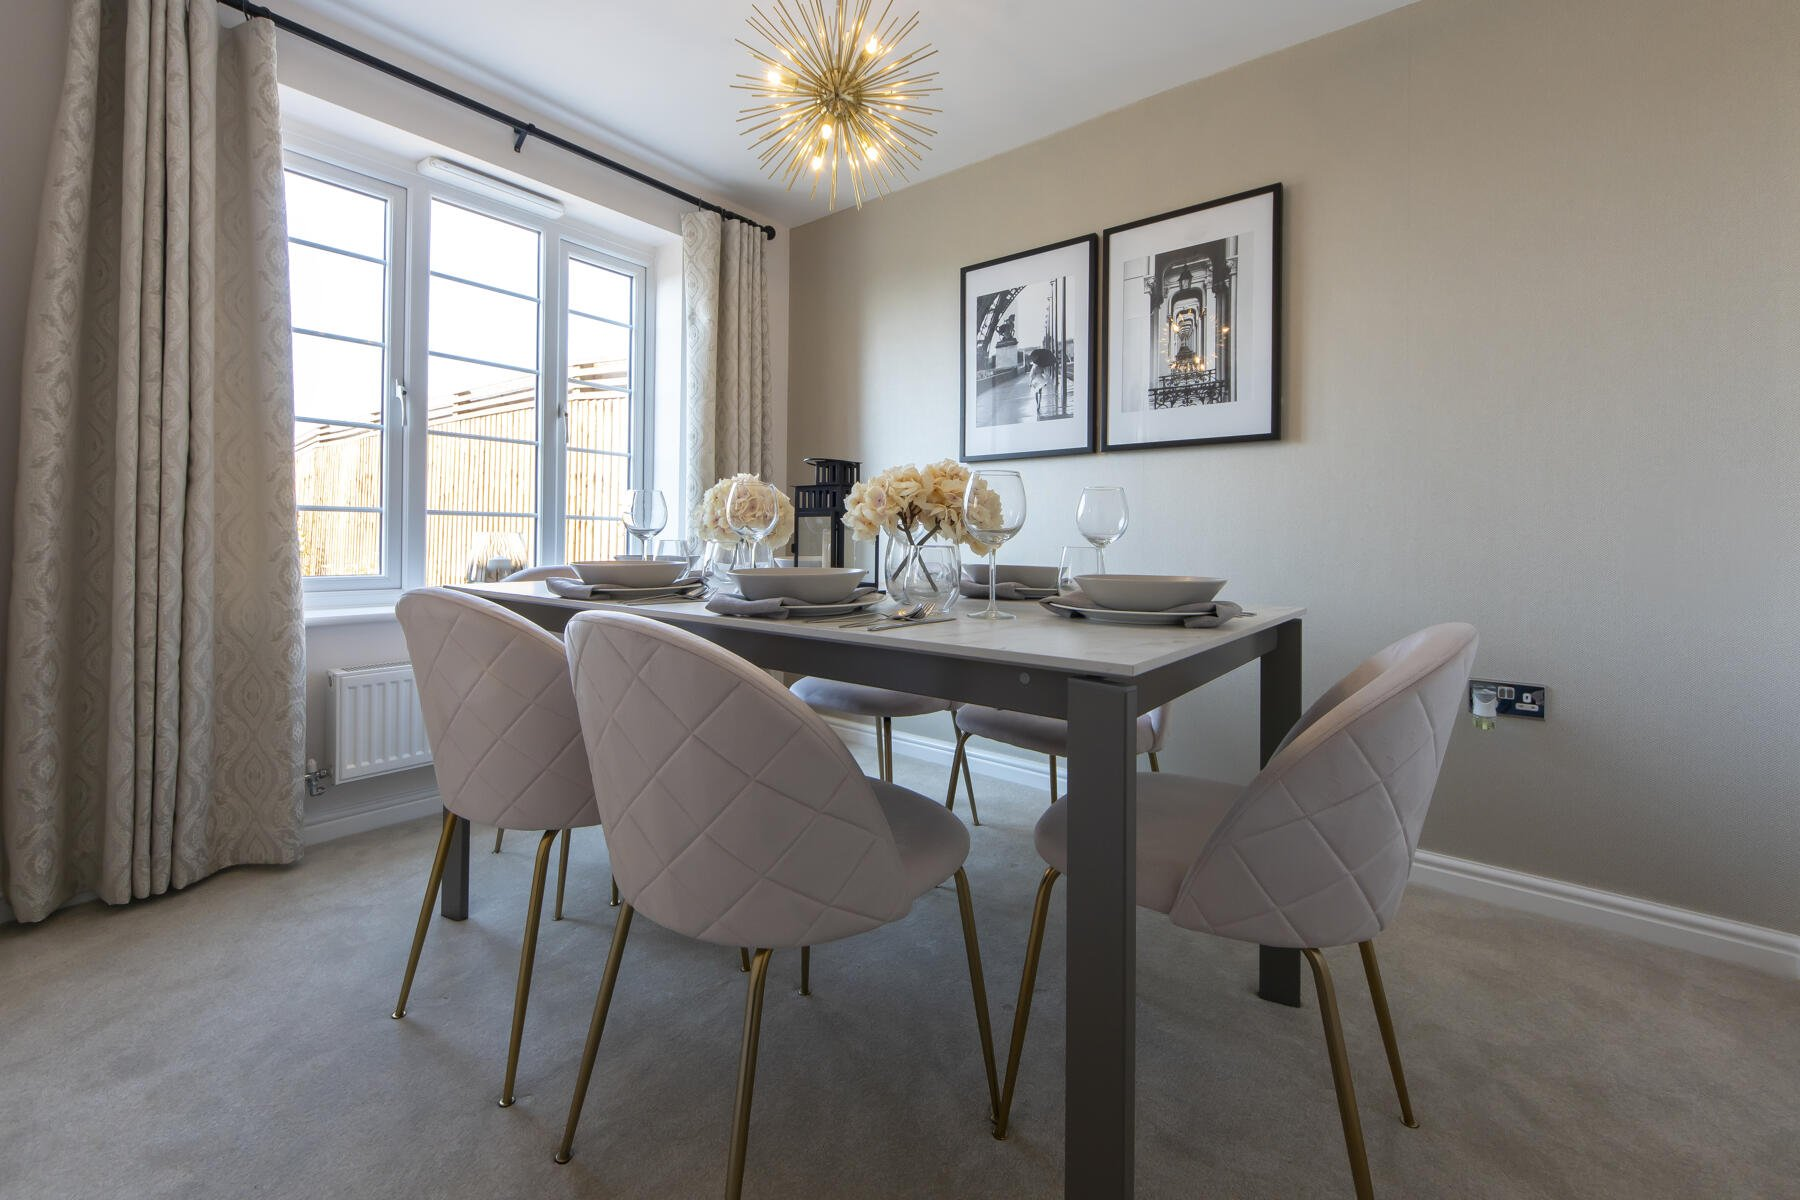 Aldenham-3bedroom-showhome_04_1800x1200